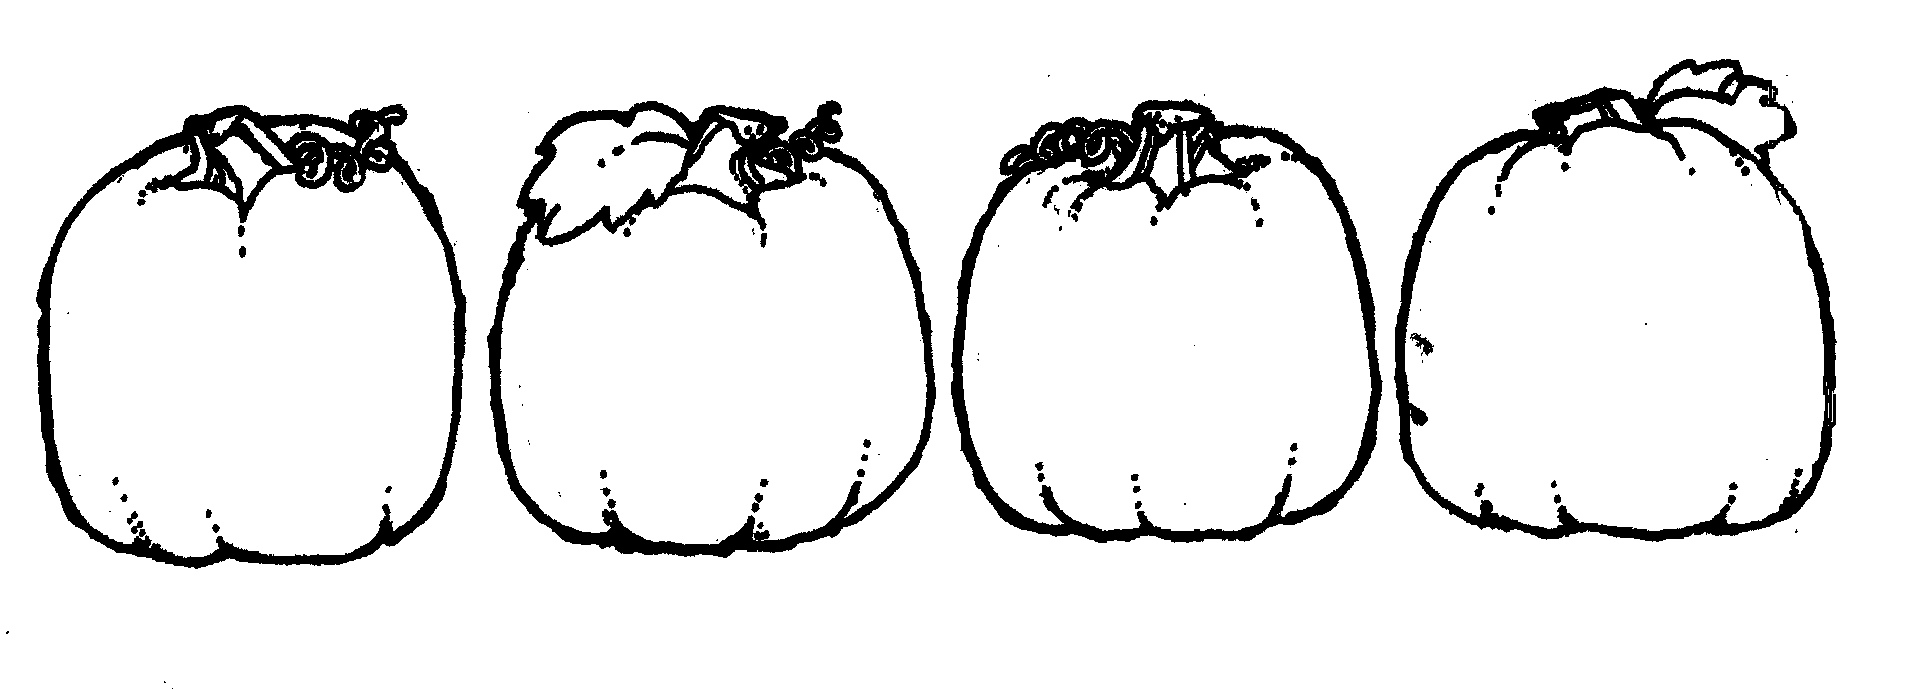 Pumpkin  black and white pumpkin outline clipart black and white free 5